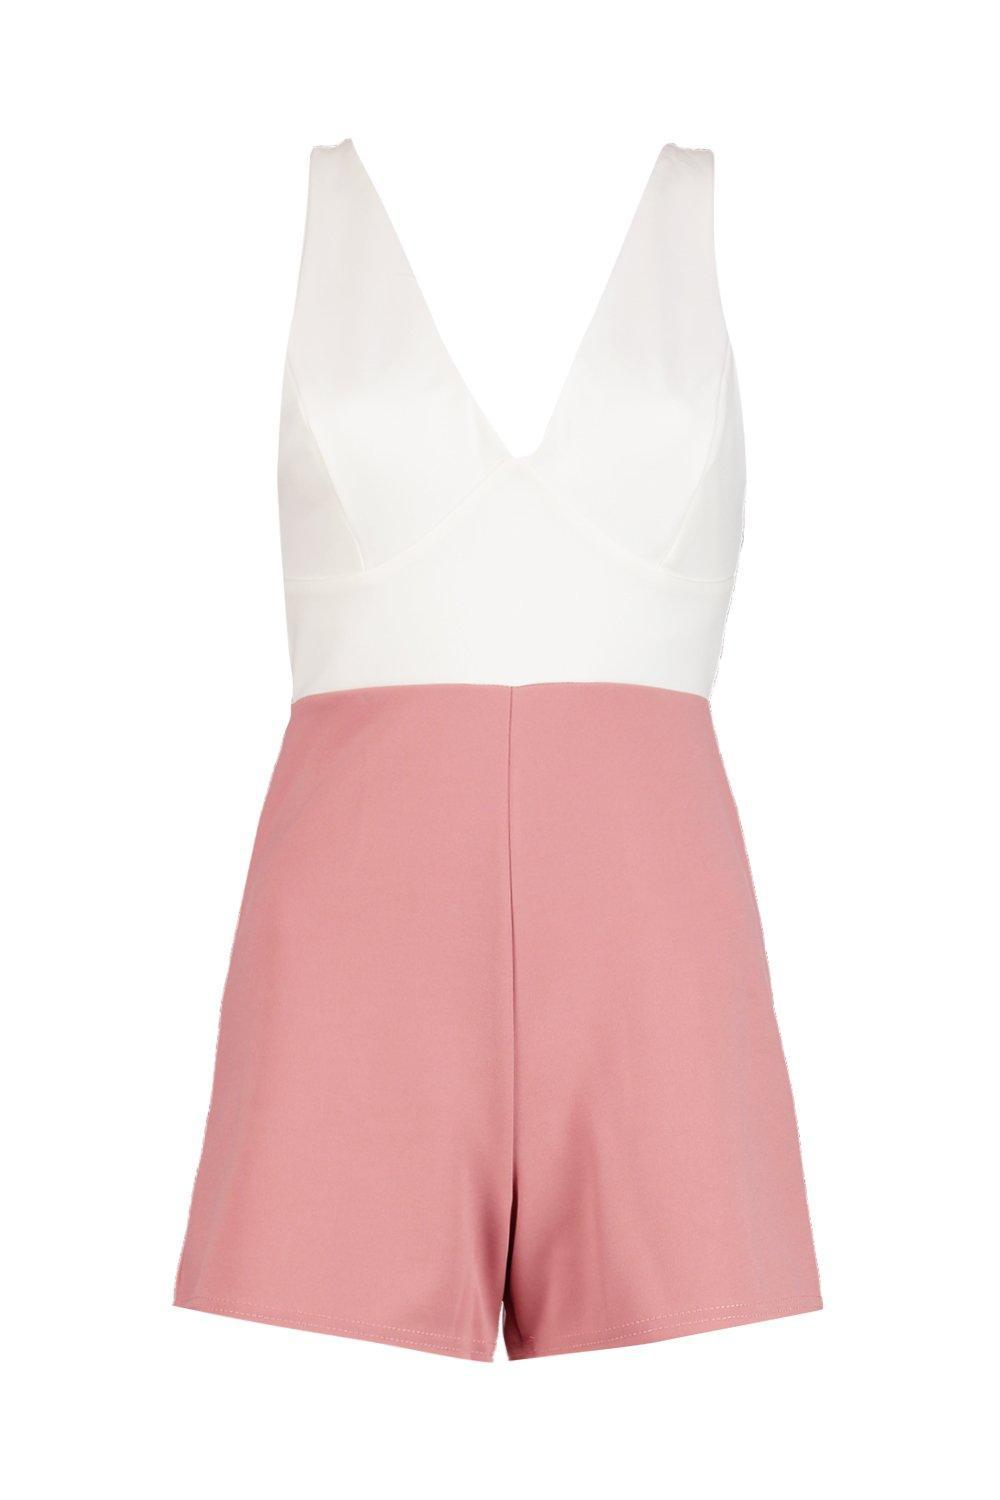 4b40cc2b37 Boohoo Beth Colour Block Tie Back Strappy Playsuit in Pink - Lyst